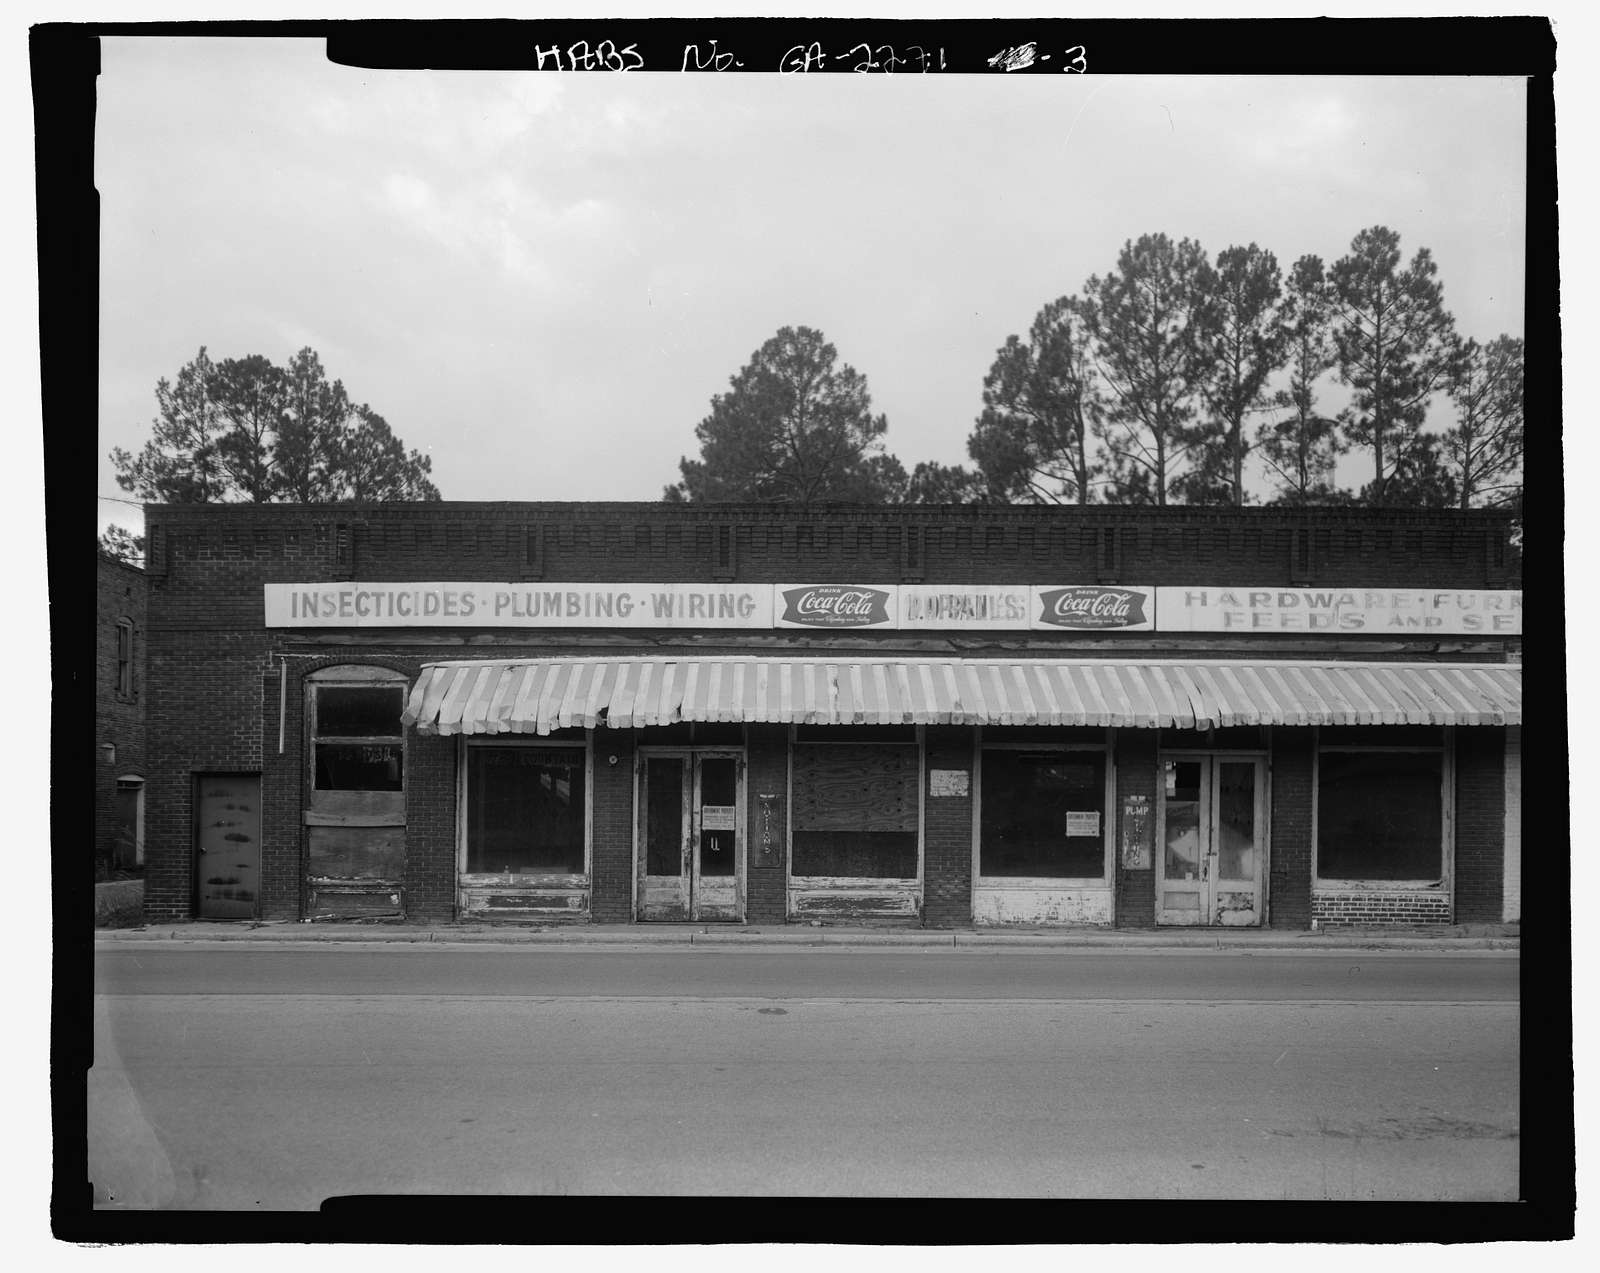 Poppell's Hardware, Furniture, Feed & Seed Store, U.S. Highway 341 at Carter Avenue, Odum, Wayne County, GA